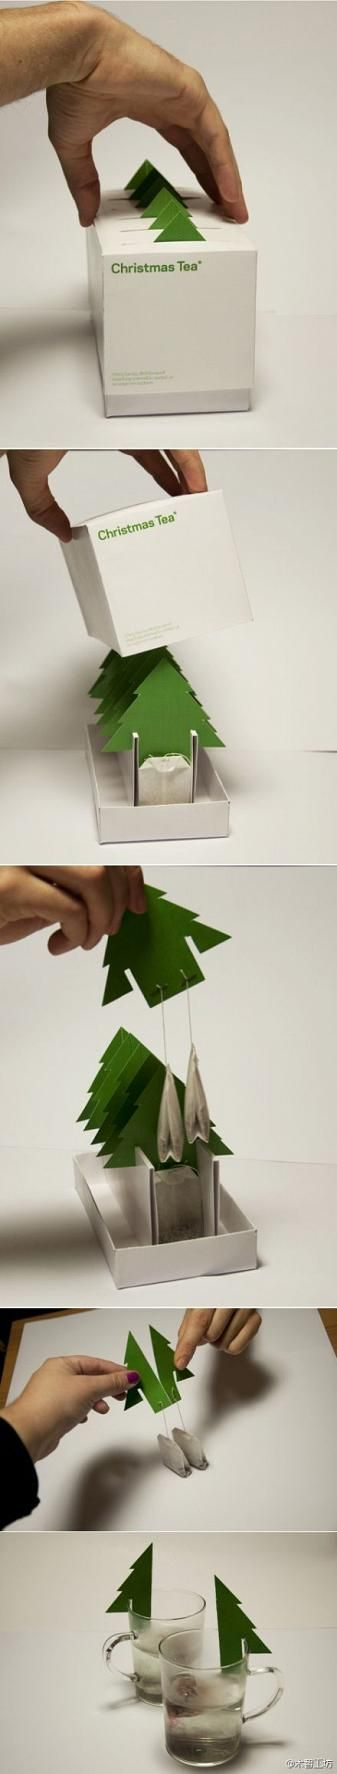 Christmas tree tea bags (Christmas Tea). | Gift Ideas